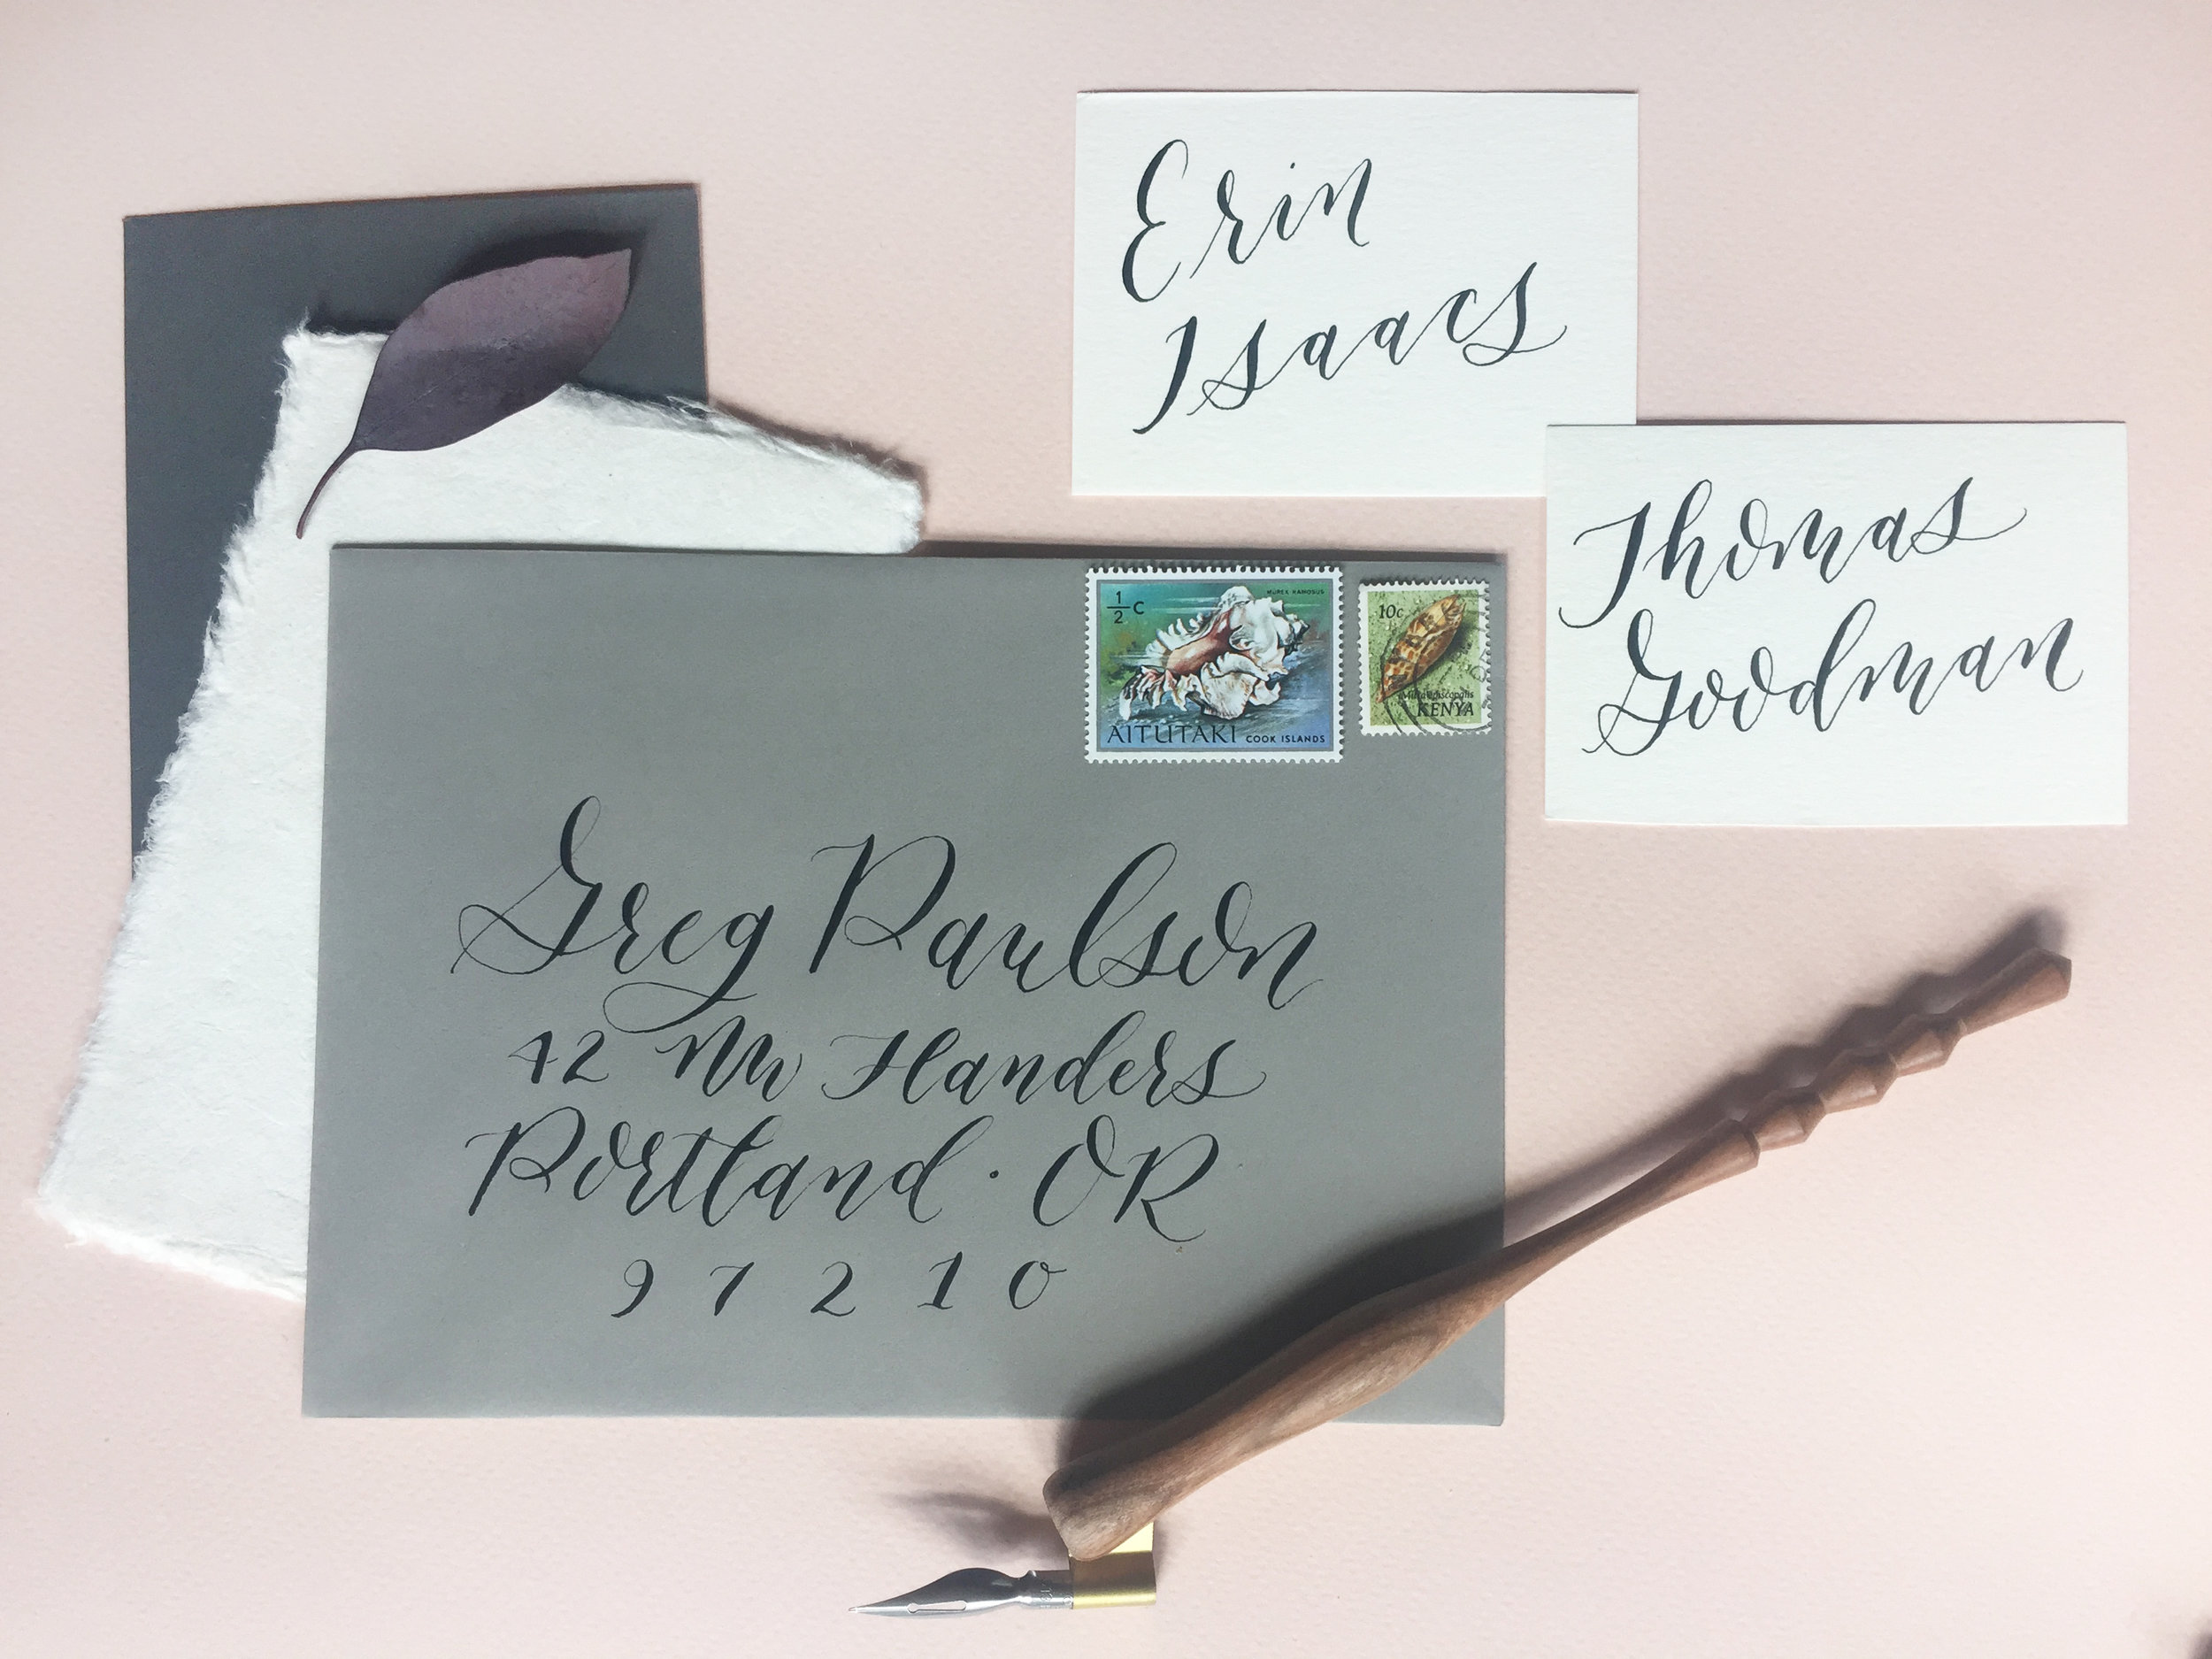 The Deco Oblique Holder from Paper & Ink Arts is featured here!